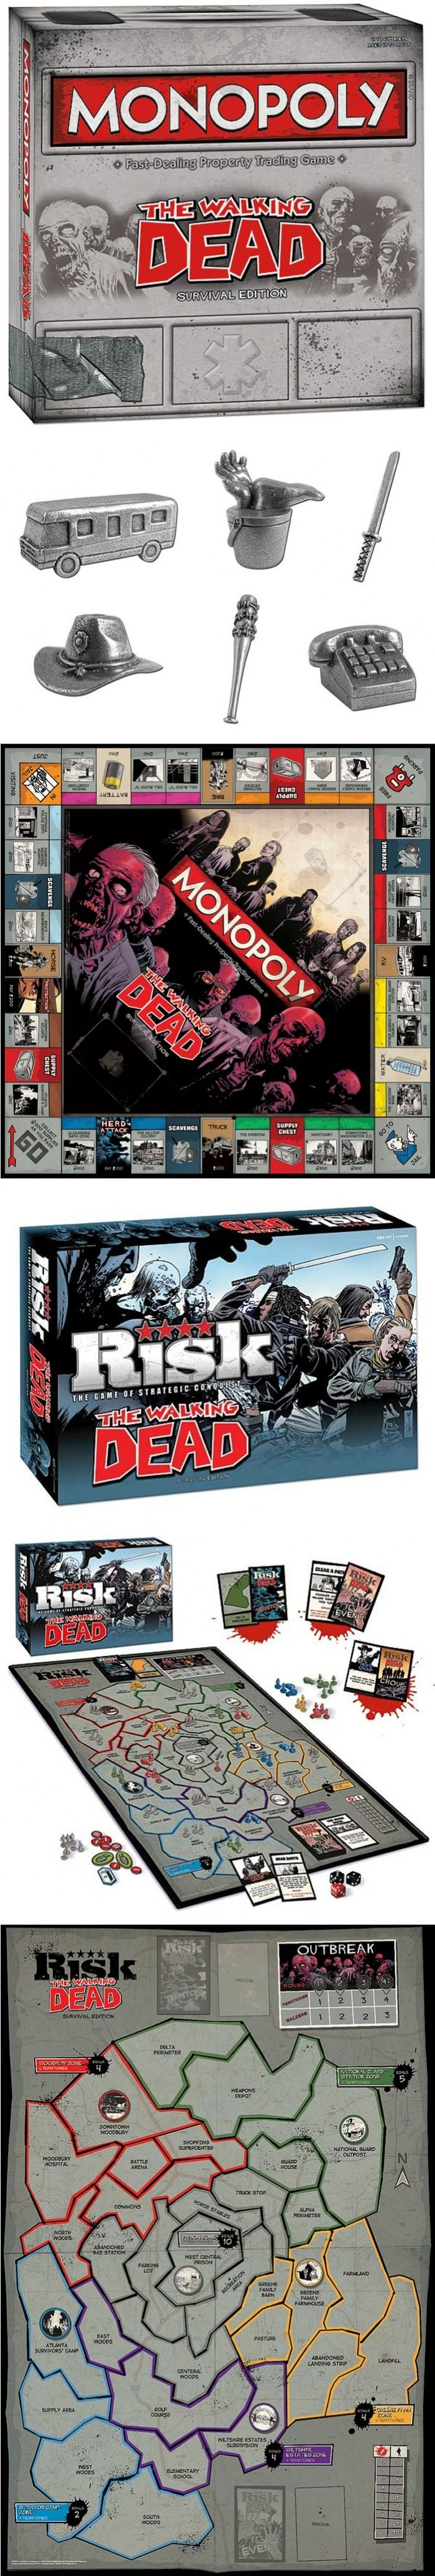 Hey Walking Dead fans! If I watched the show, I'd host a game night!